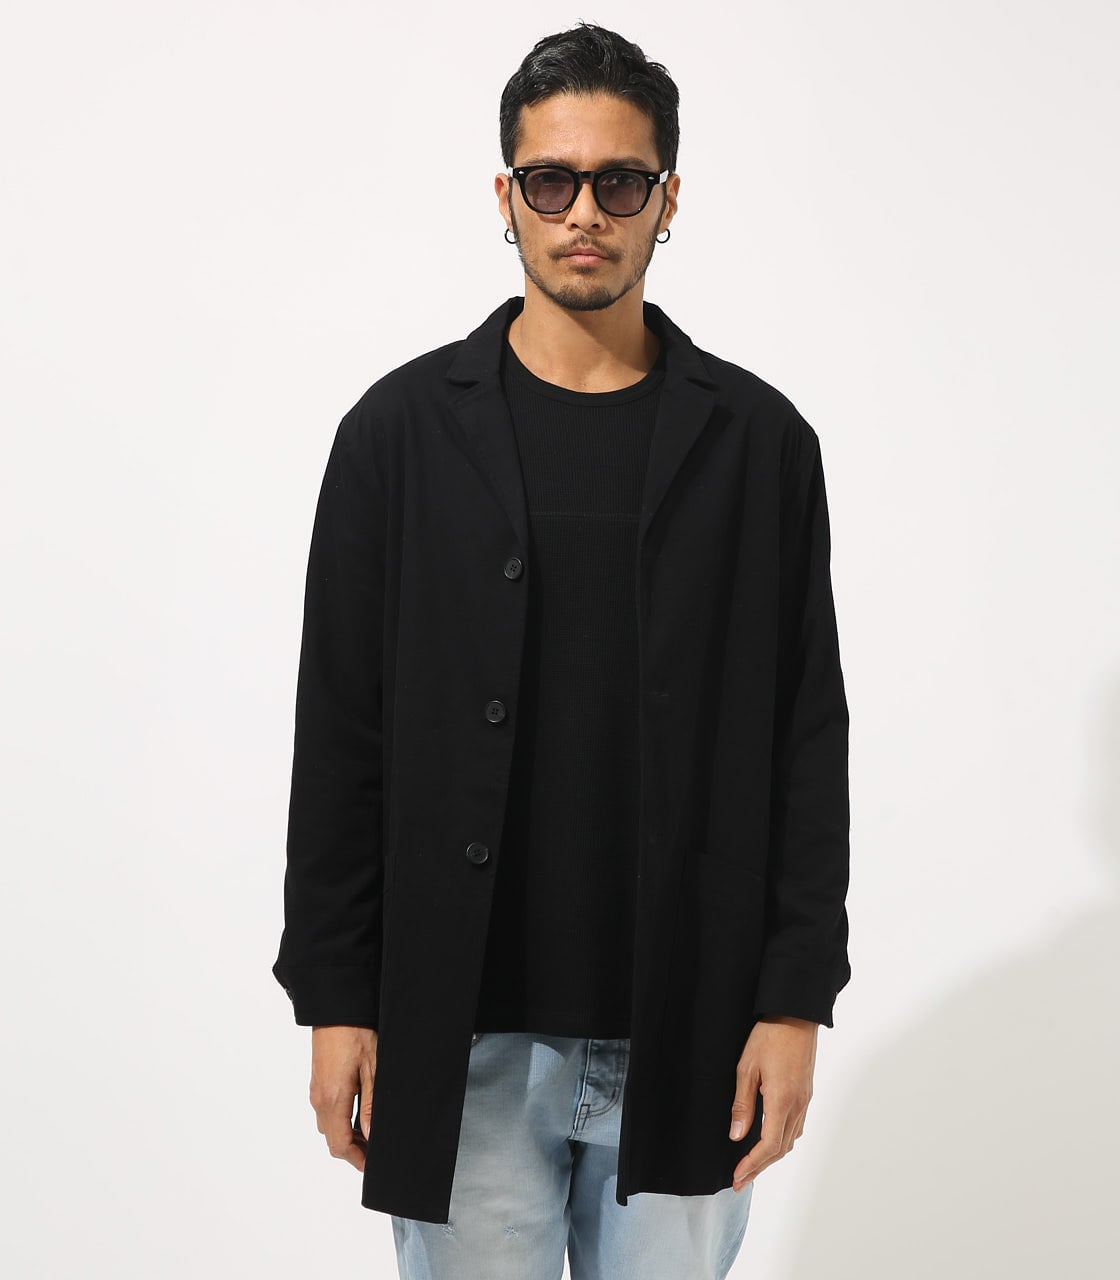 【AZUL BY MOUSSY】STANDARD SHOPCOAT 詳細画像 BLK 5